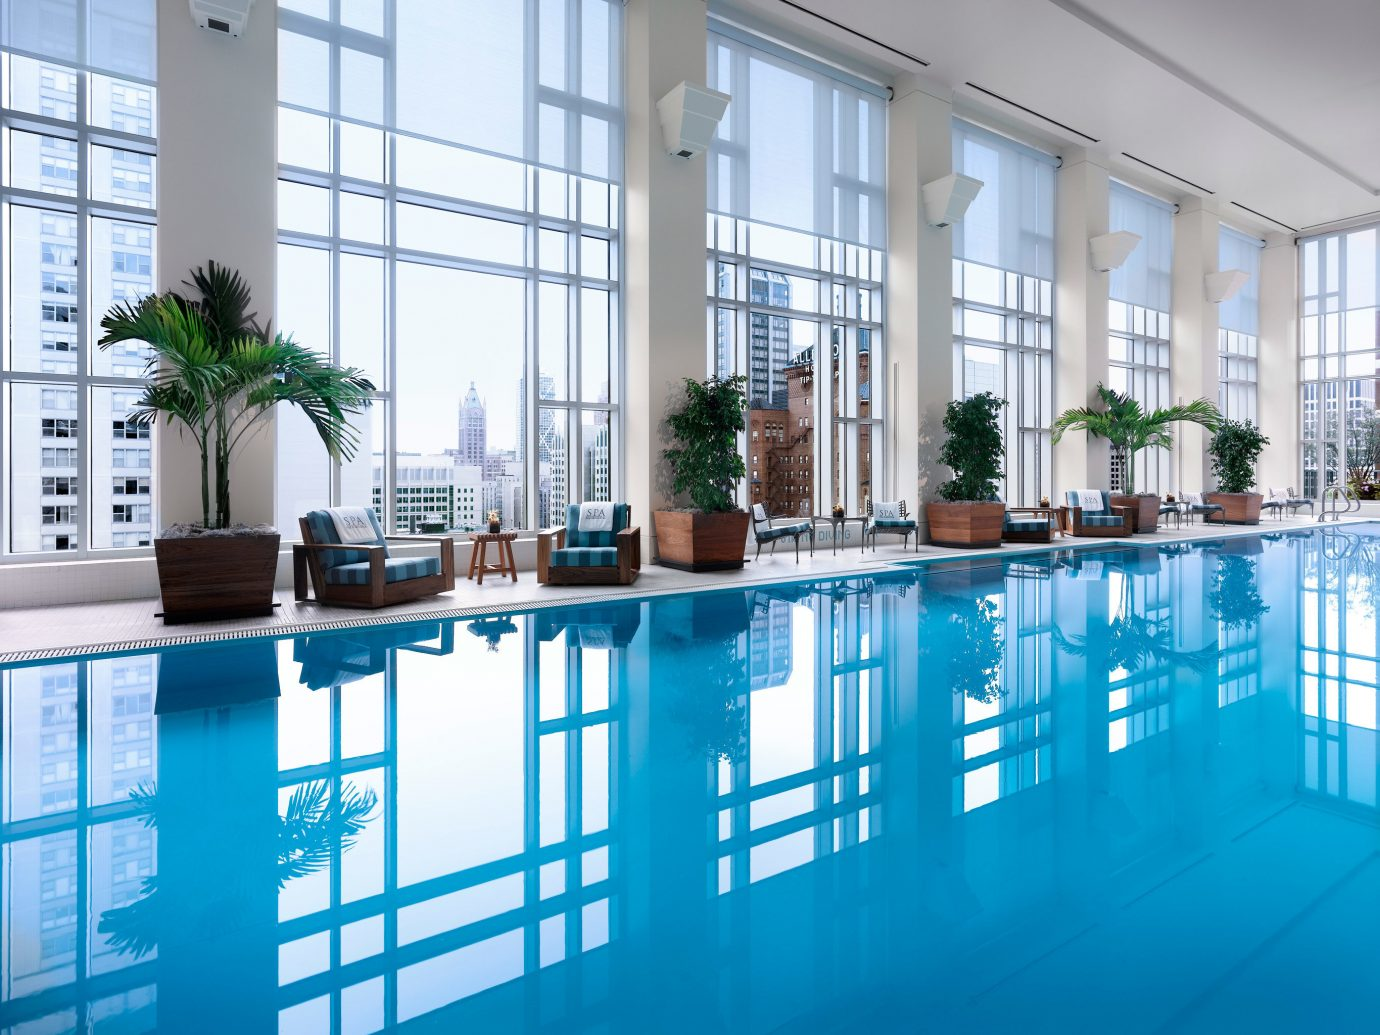 City Hotels Pool Scenic views indoor window condominium swimming pool property leisure building leisure centre estate reflecting pool Resort interior design home real estate facade apartment headquarters blue painted several